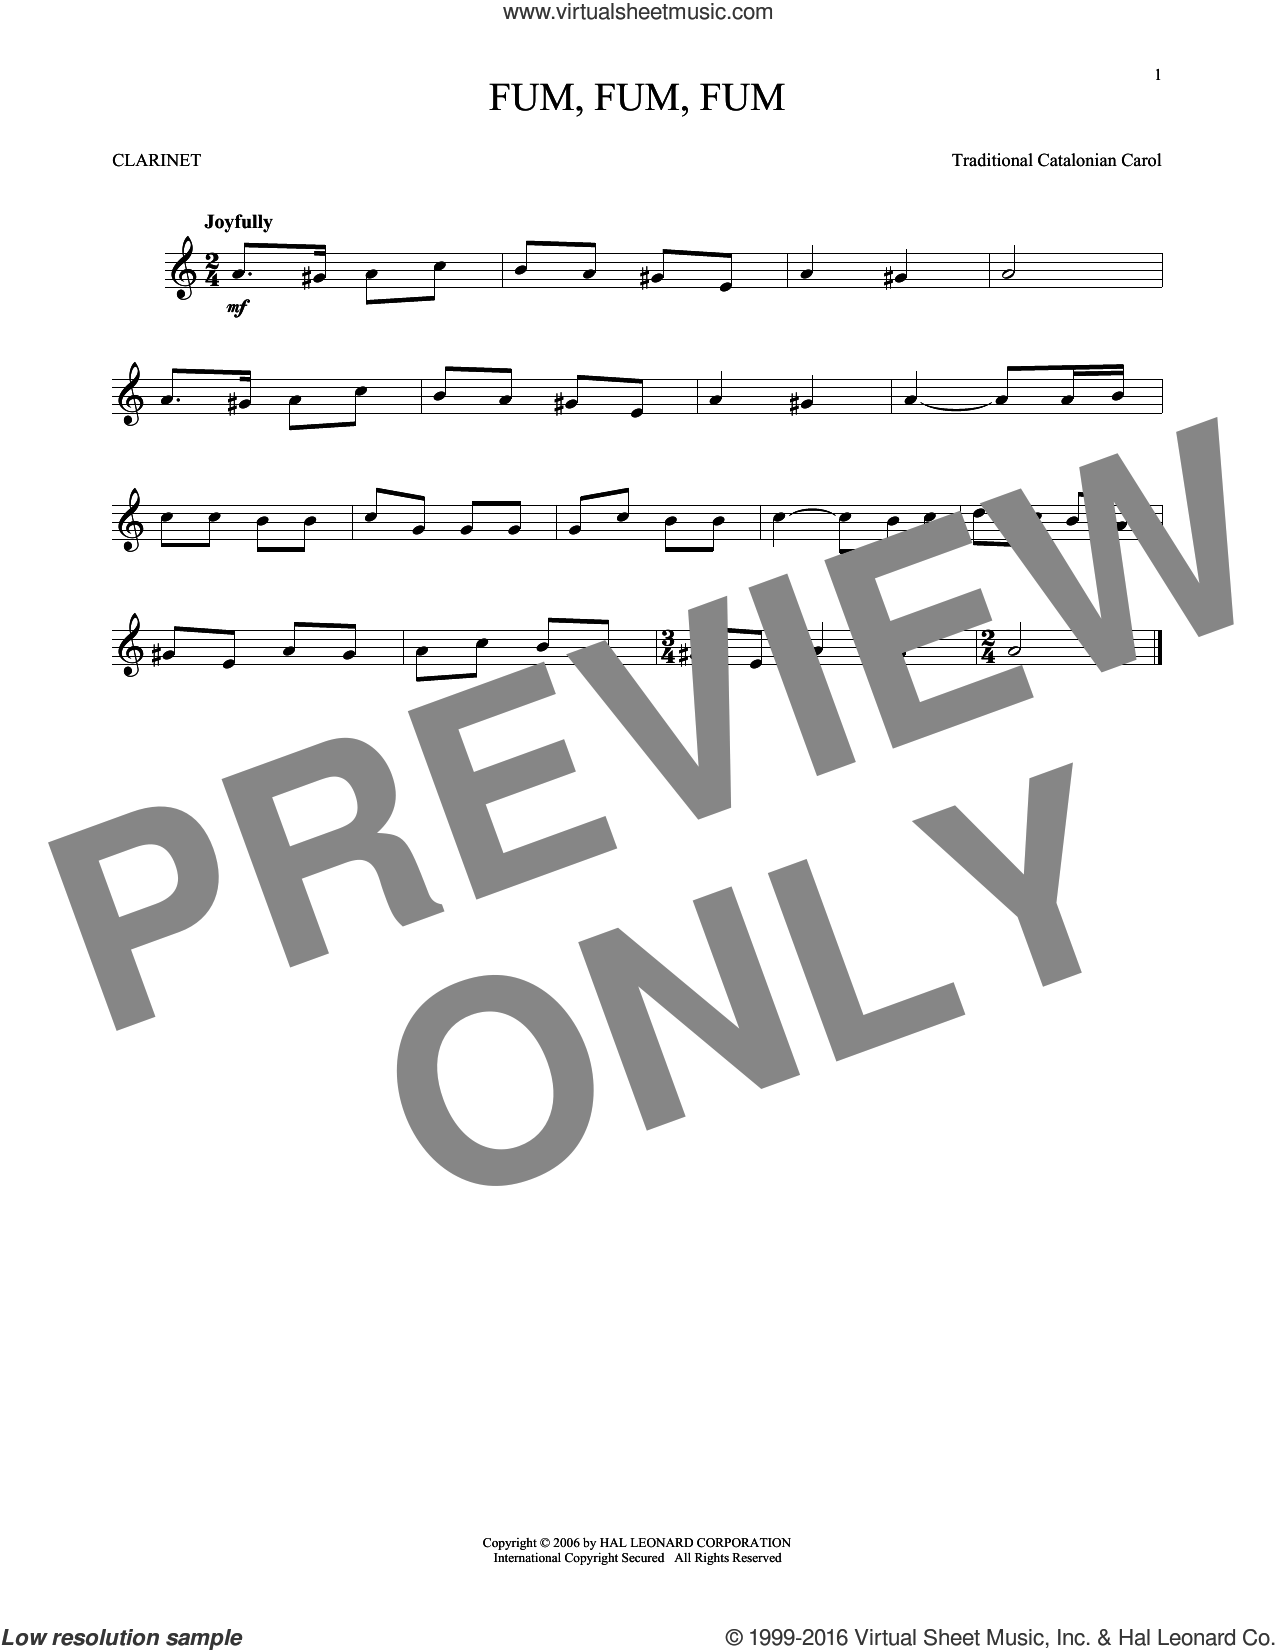 Fum, Fum, Fum sheet music for clarinet solo. Score Image Preview.